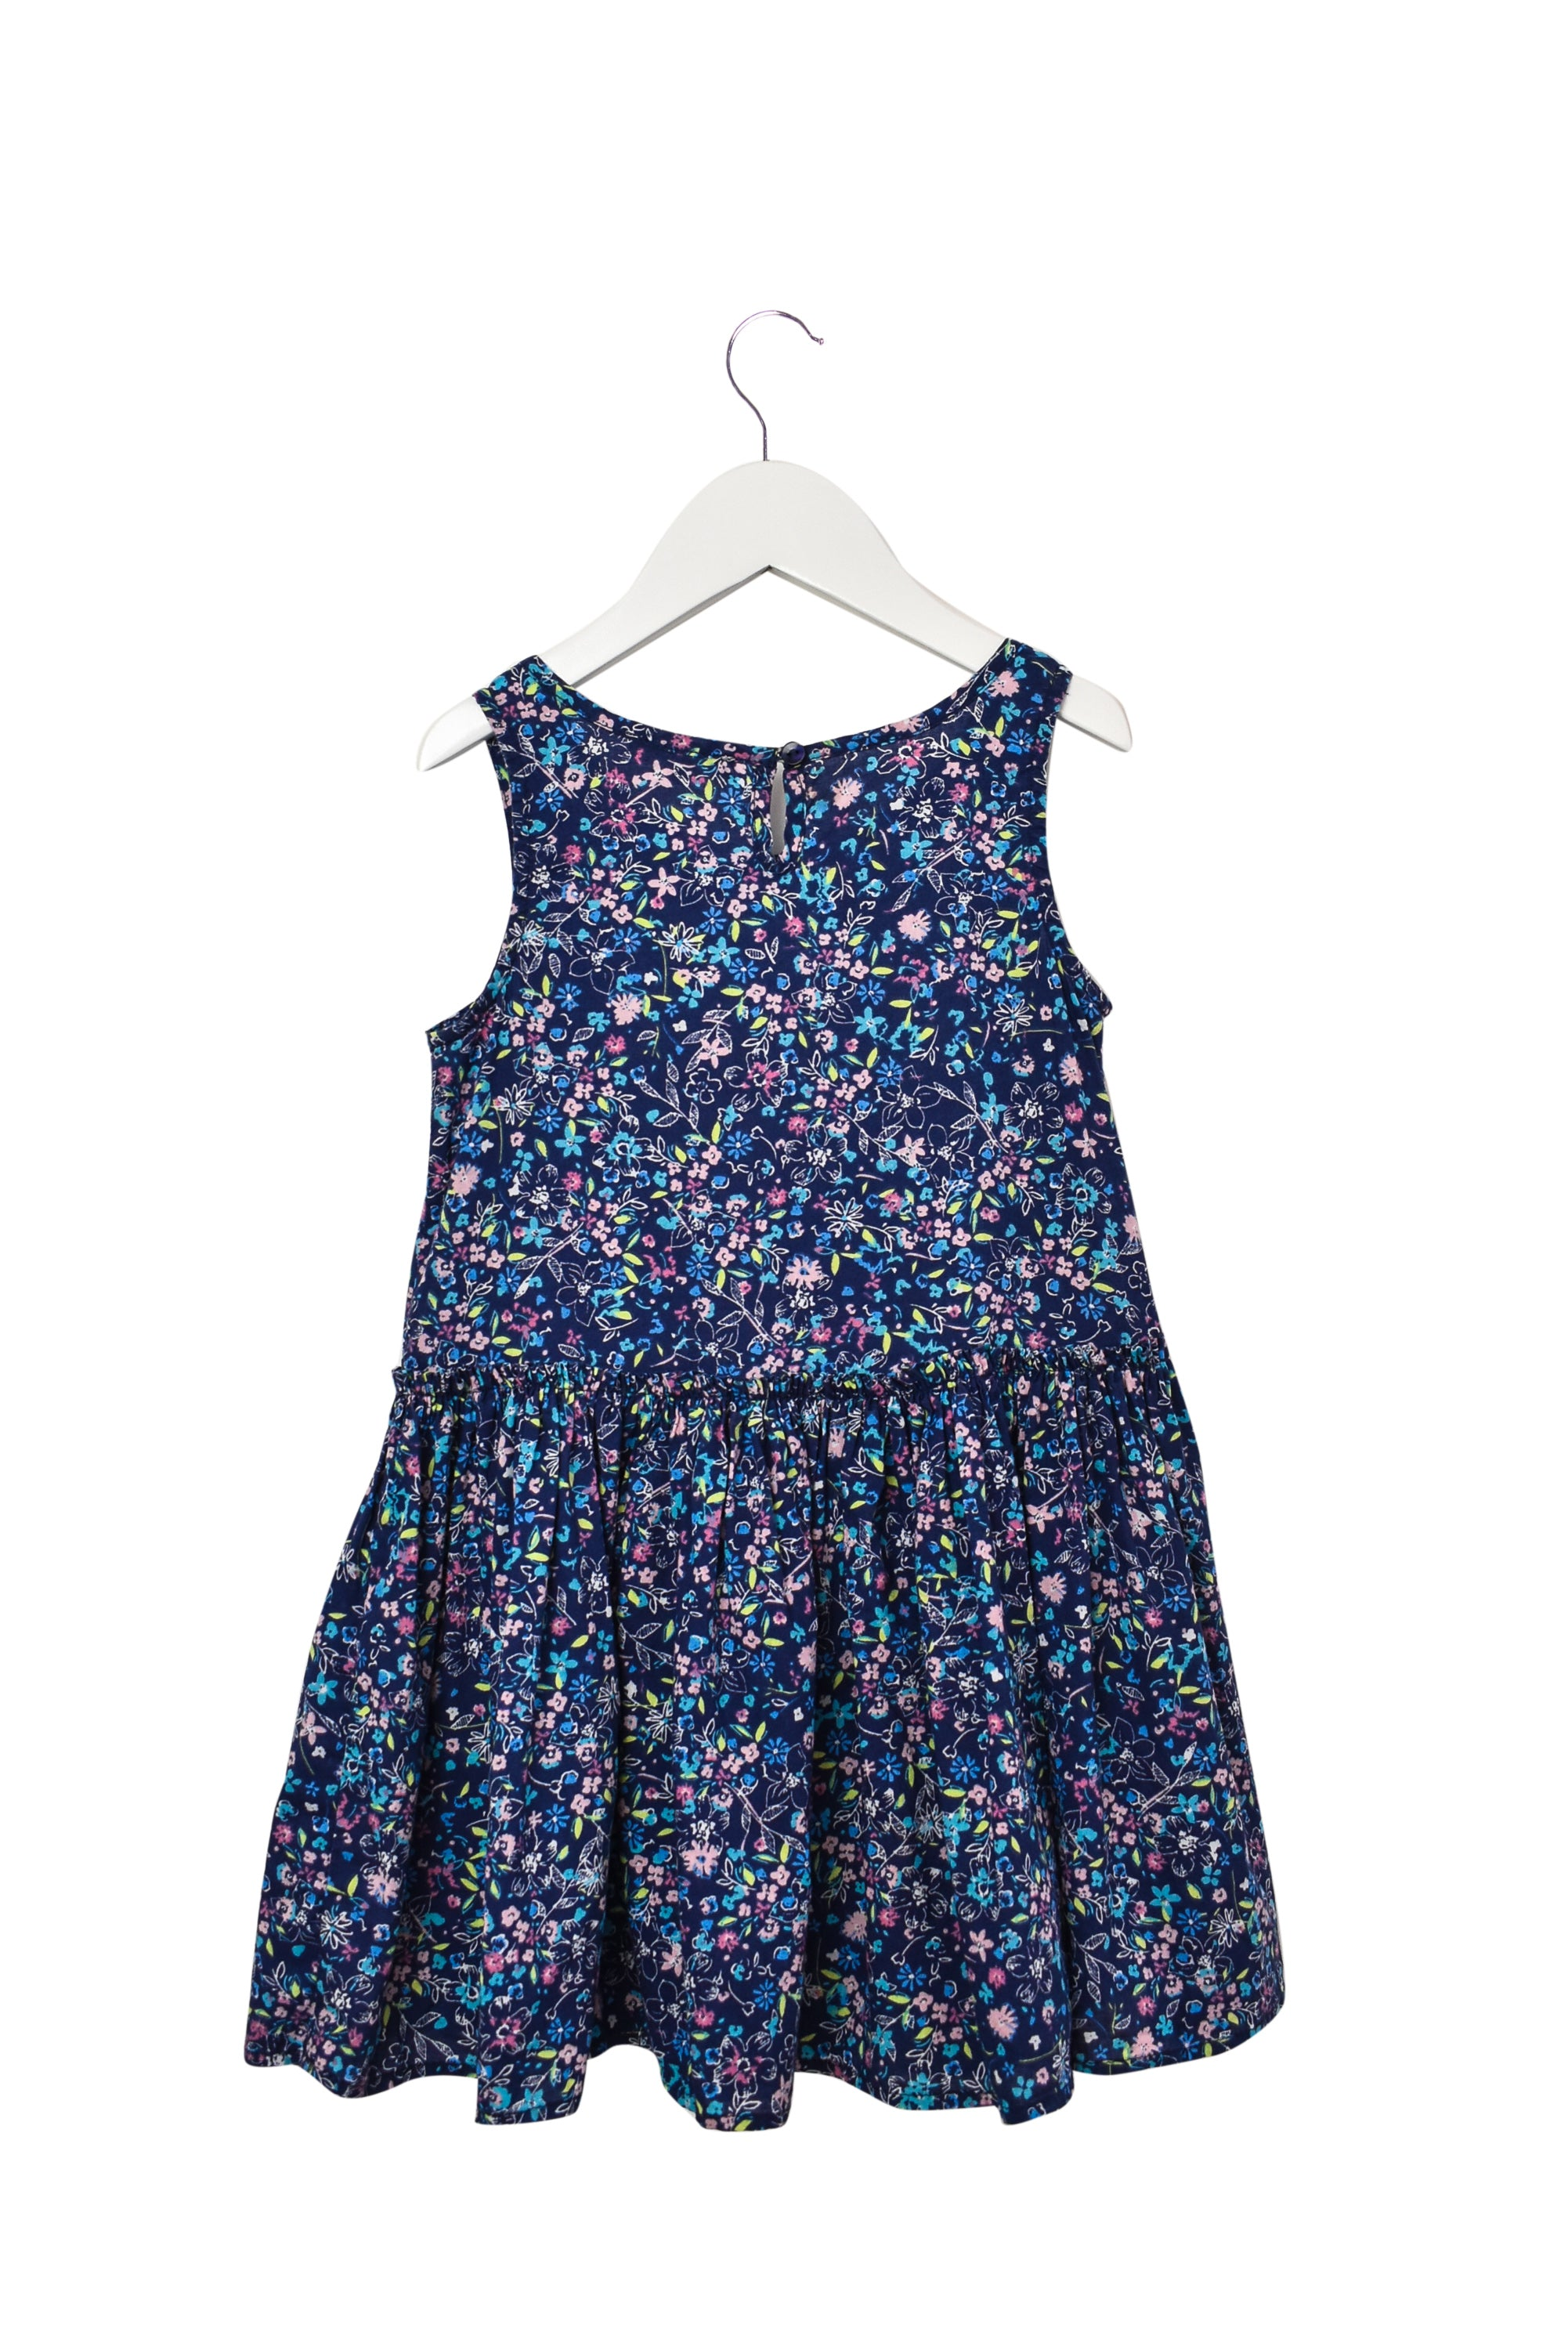 10008013 Tucker & Tate Kids ~ Dress 5T at Retykle